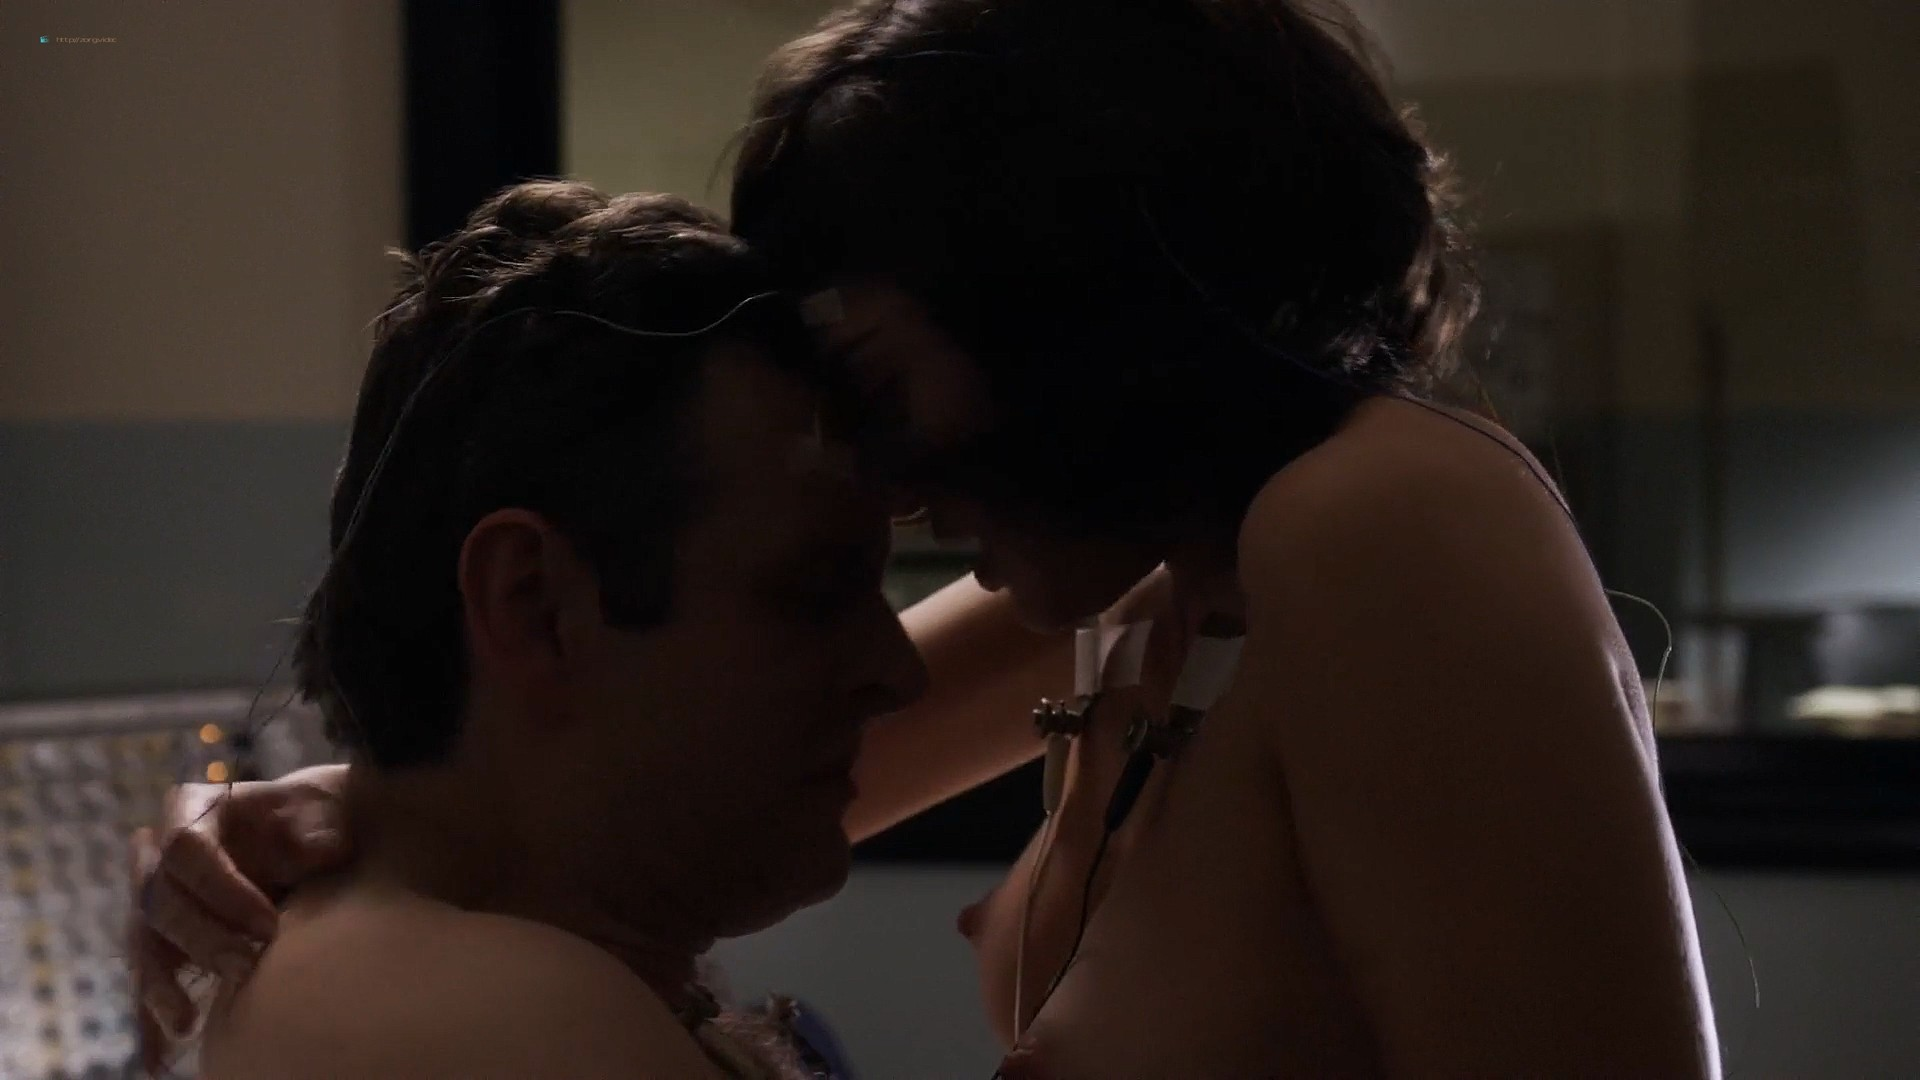 Lizzy Caplan nude sex Rose Mclever nude topless - Masters of Sex (2013) s1e7 HD 1080p (2)